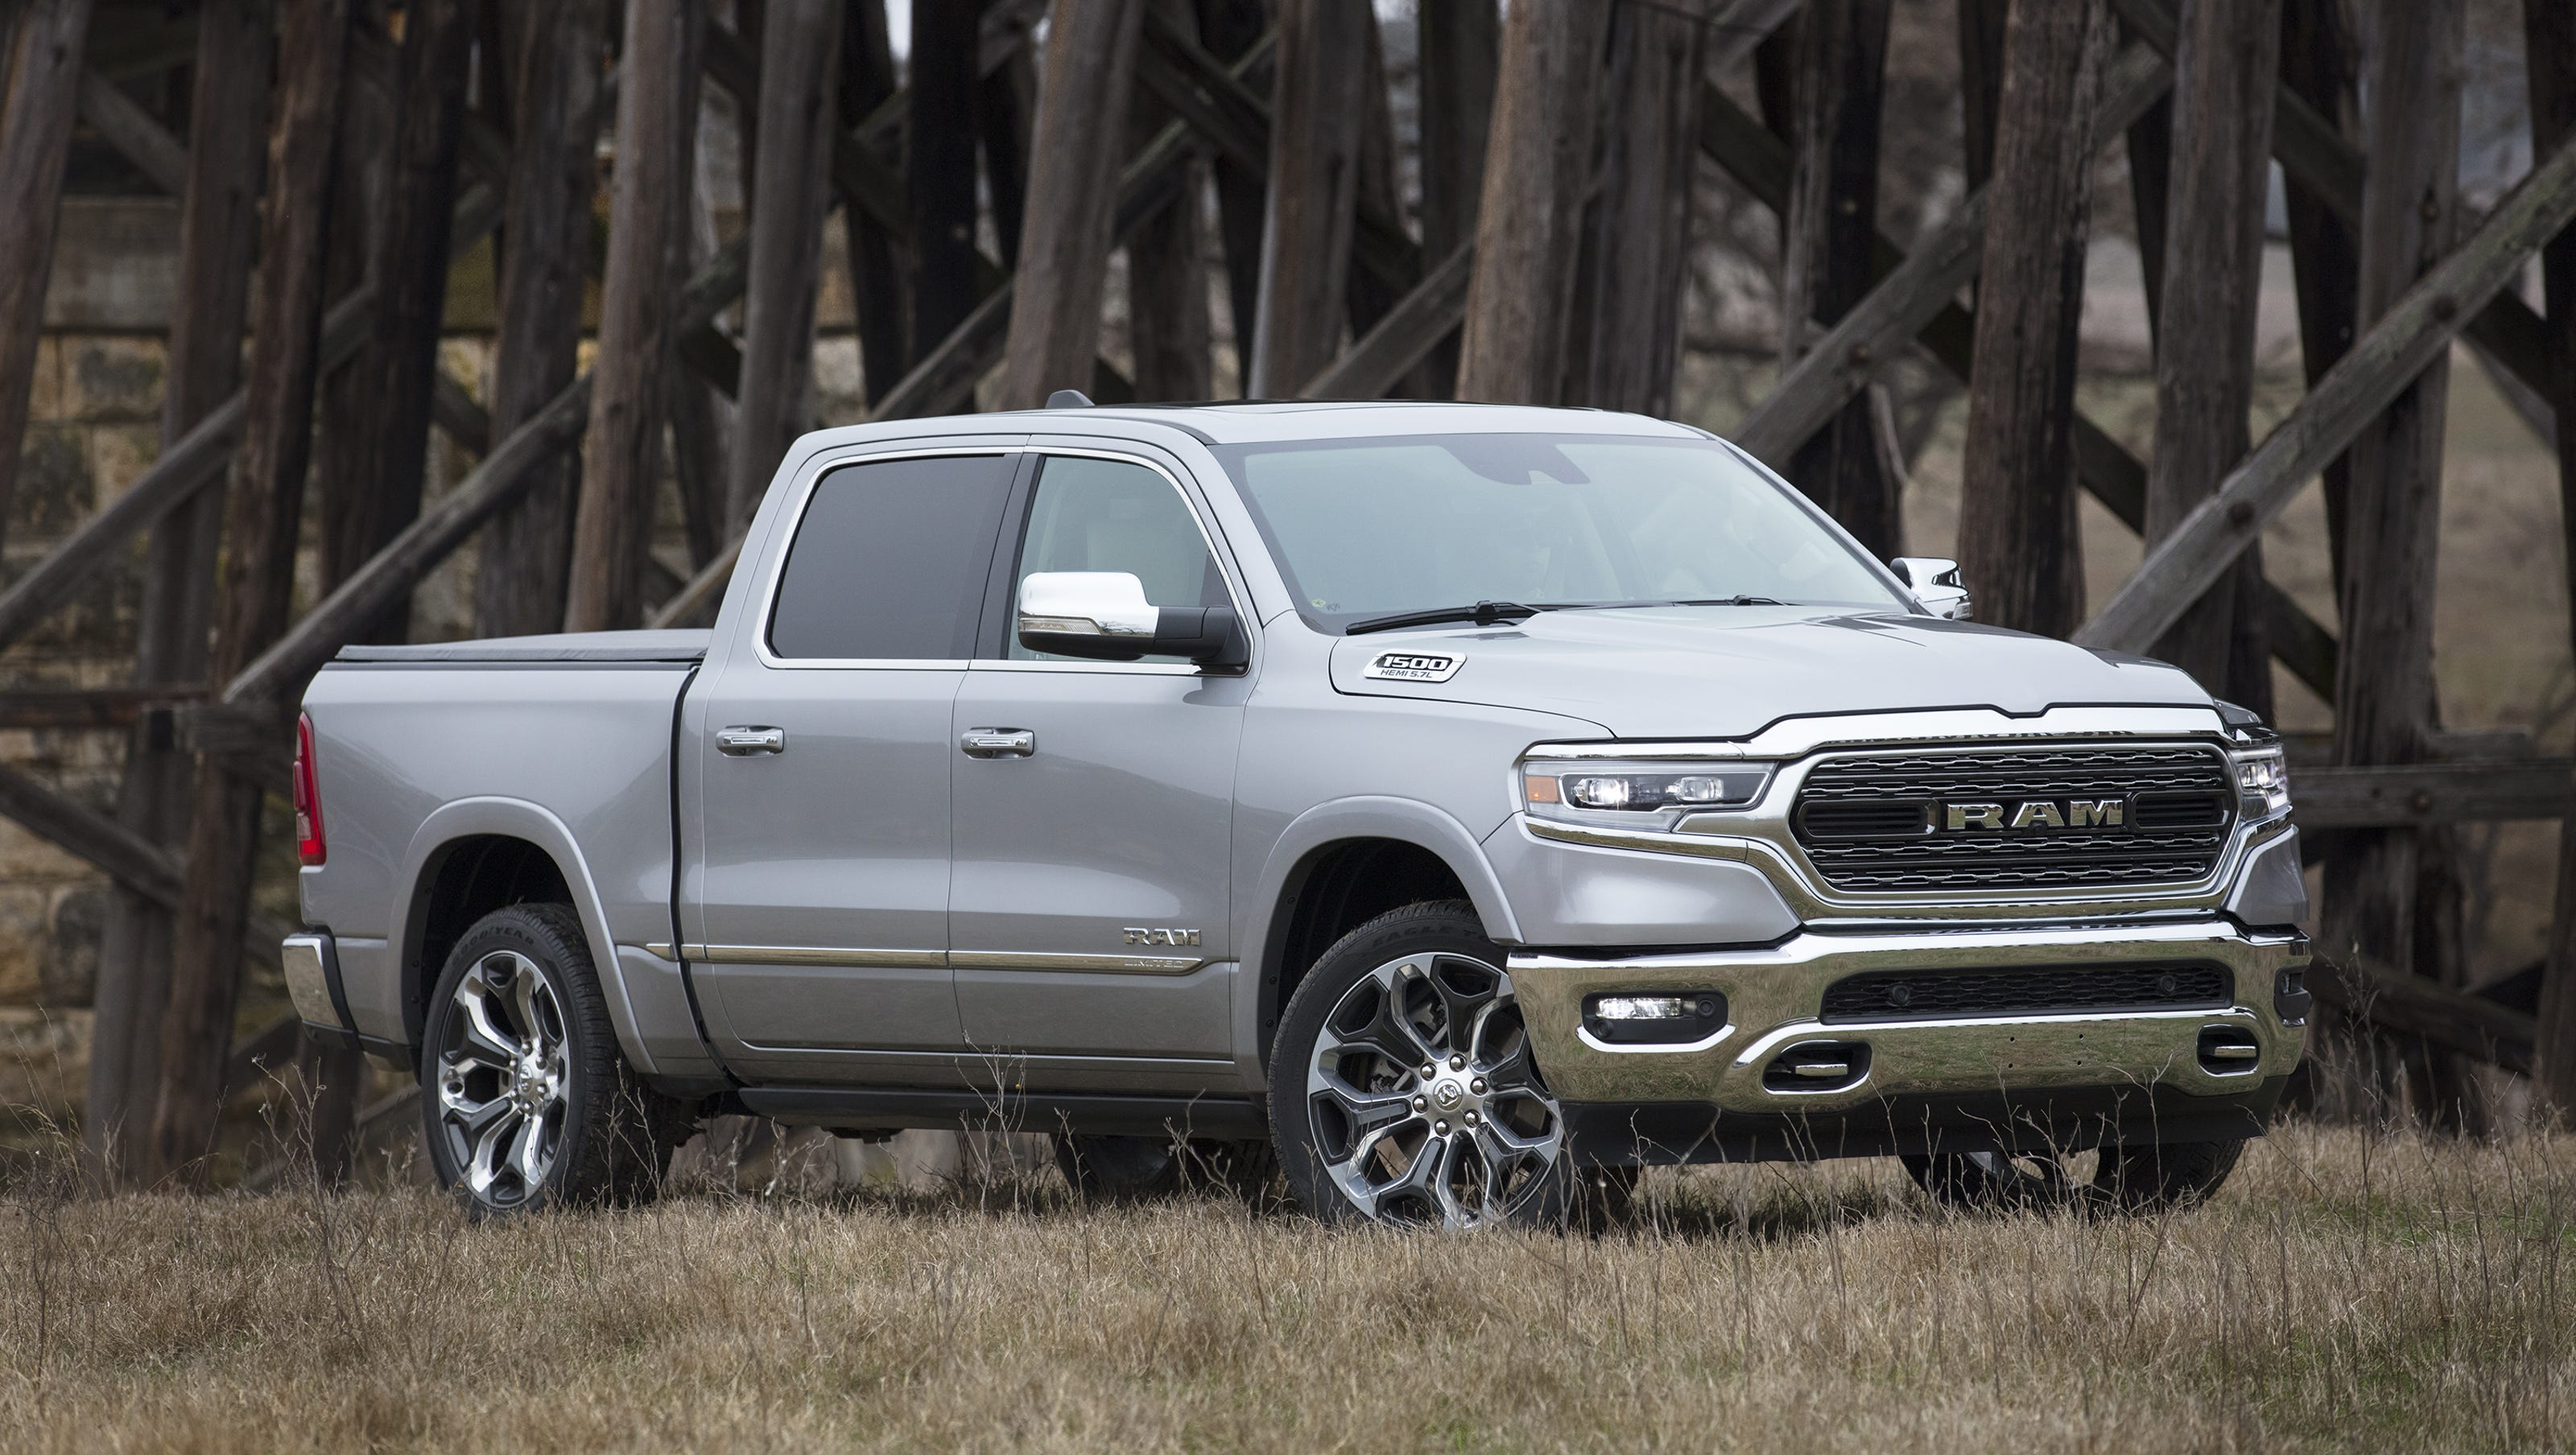 Gmc Bill Pay >> 2019 Ram 1500 pickup truck gets jump on Chevrolet Silverado, GMC Sierra